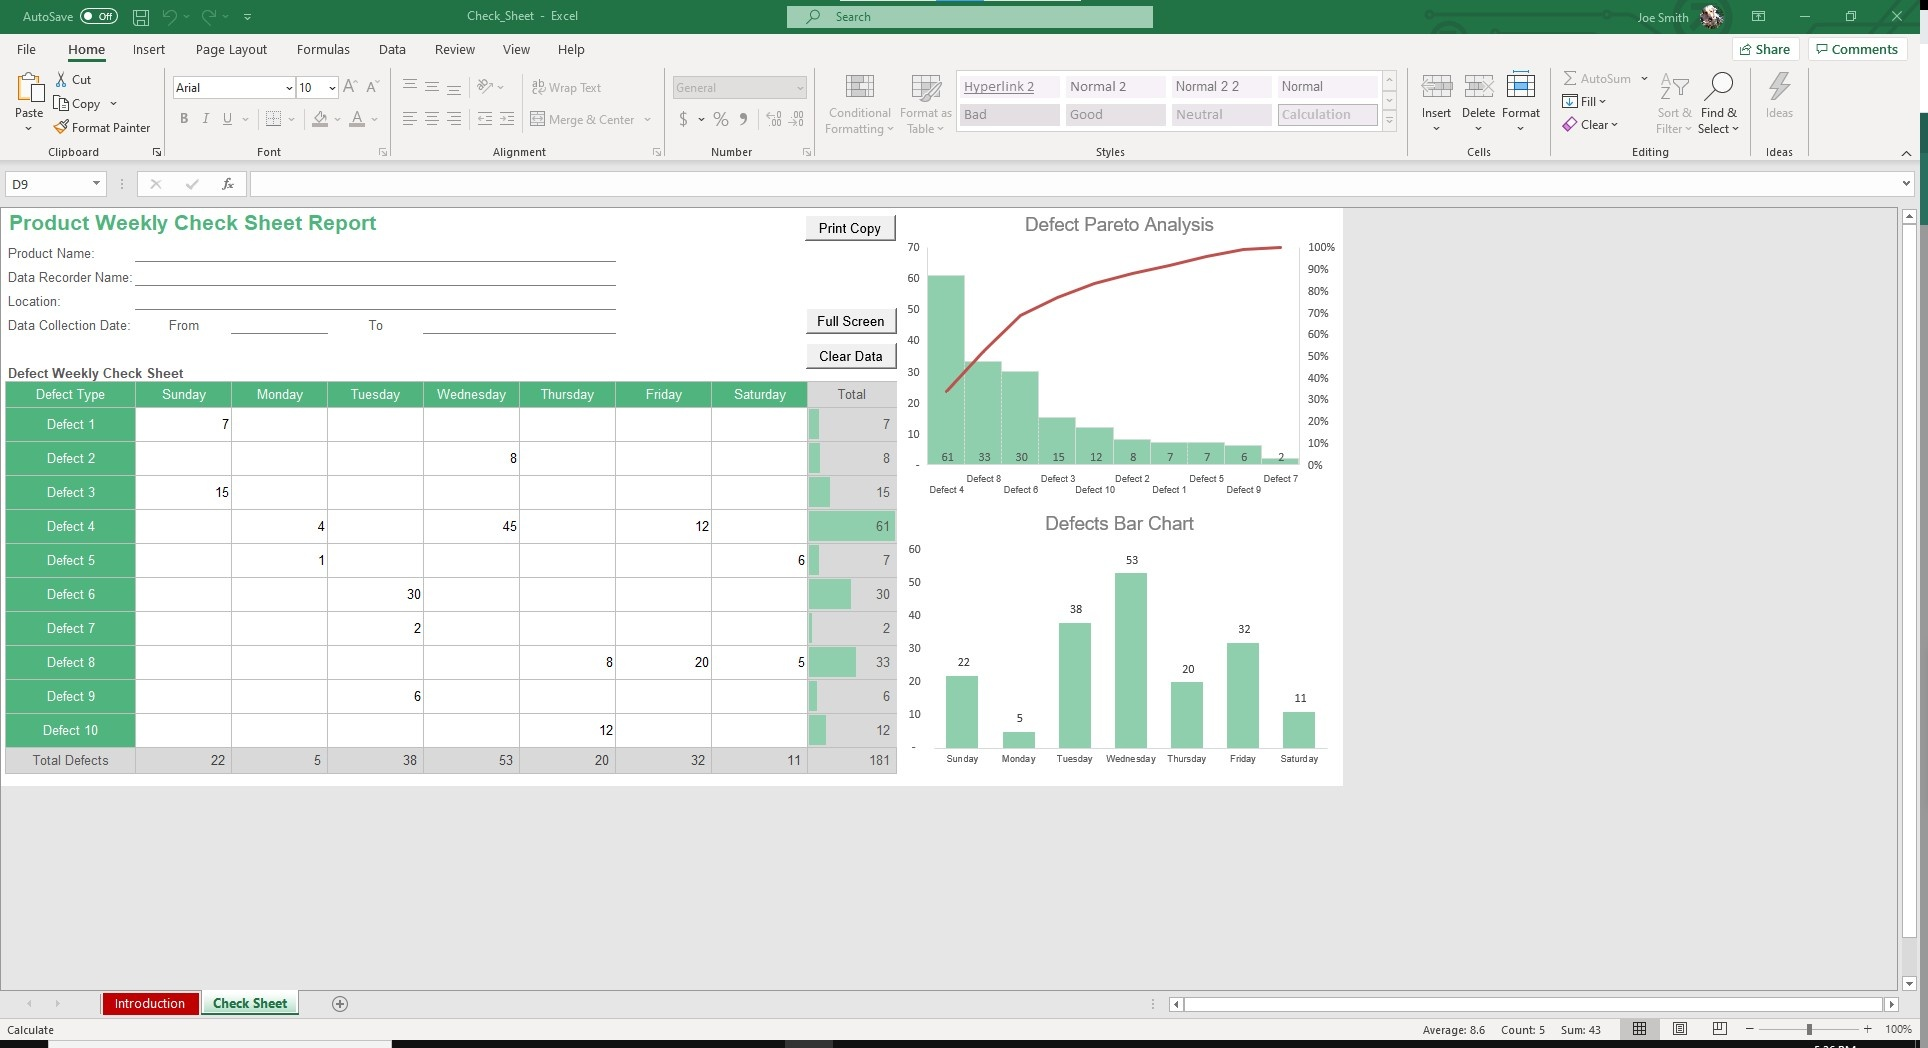 The Check Sheet template makes it easy to record production issues and automatically updates defects bar and pareto charts.